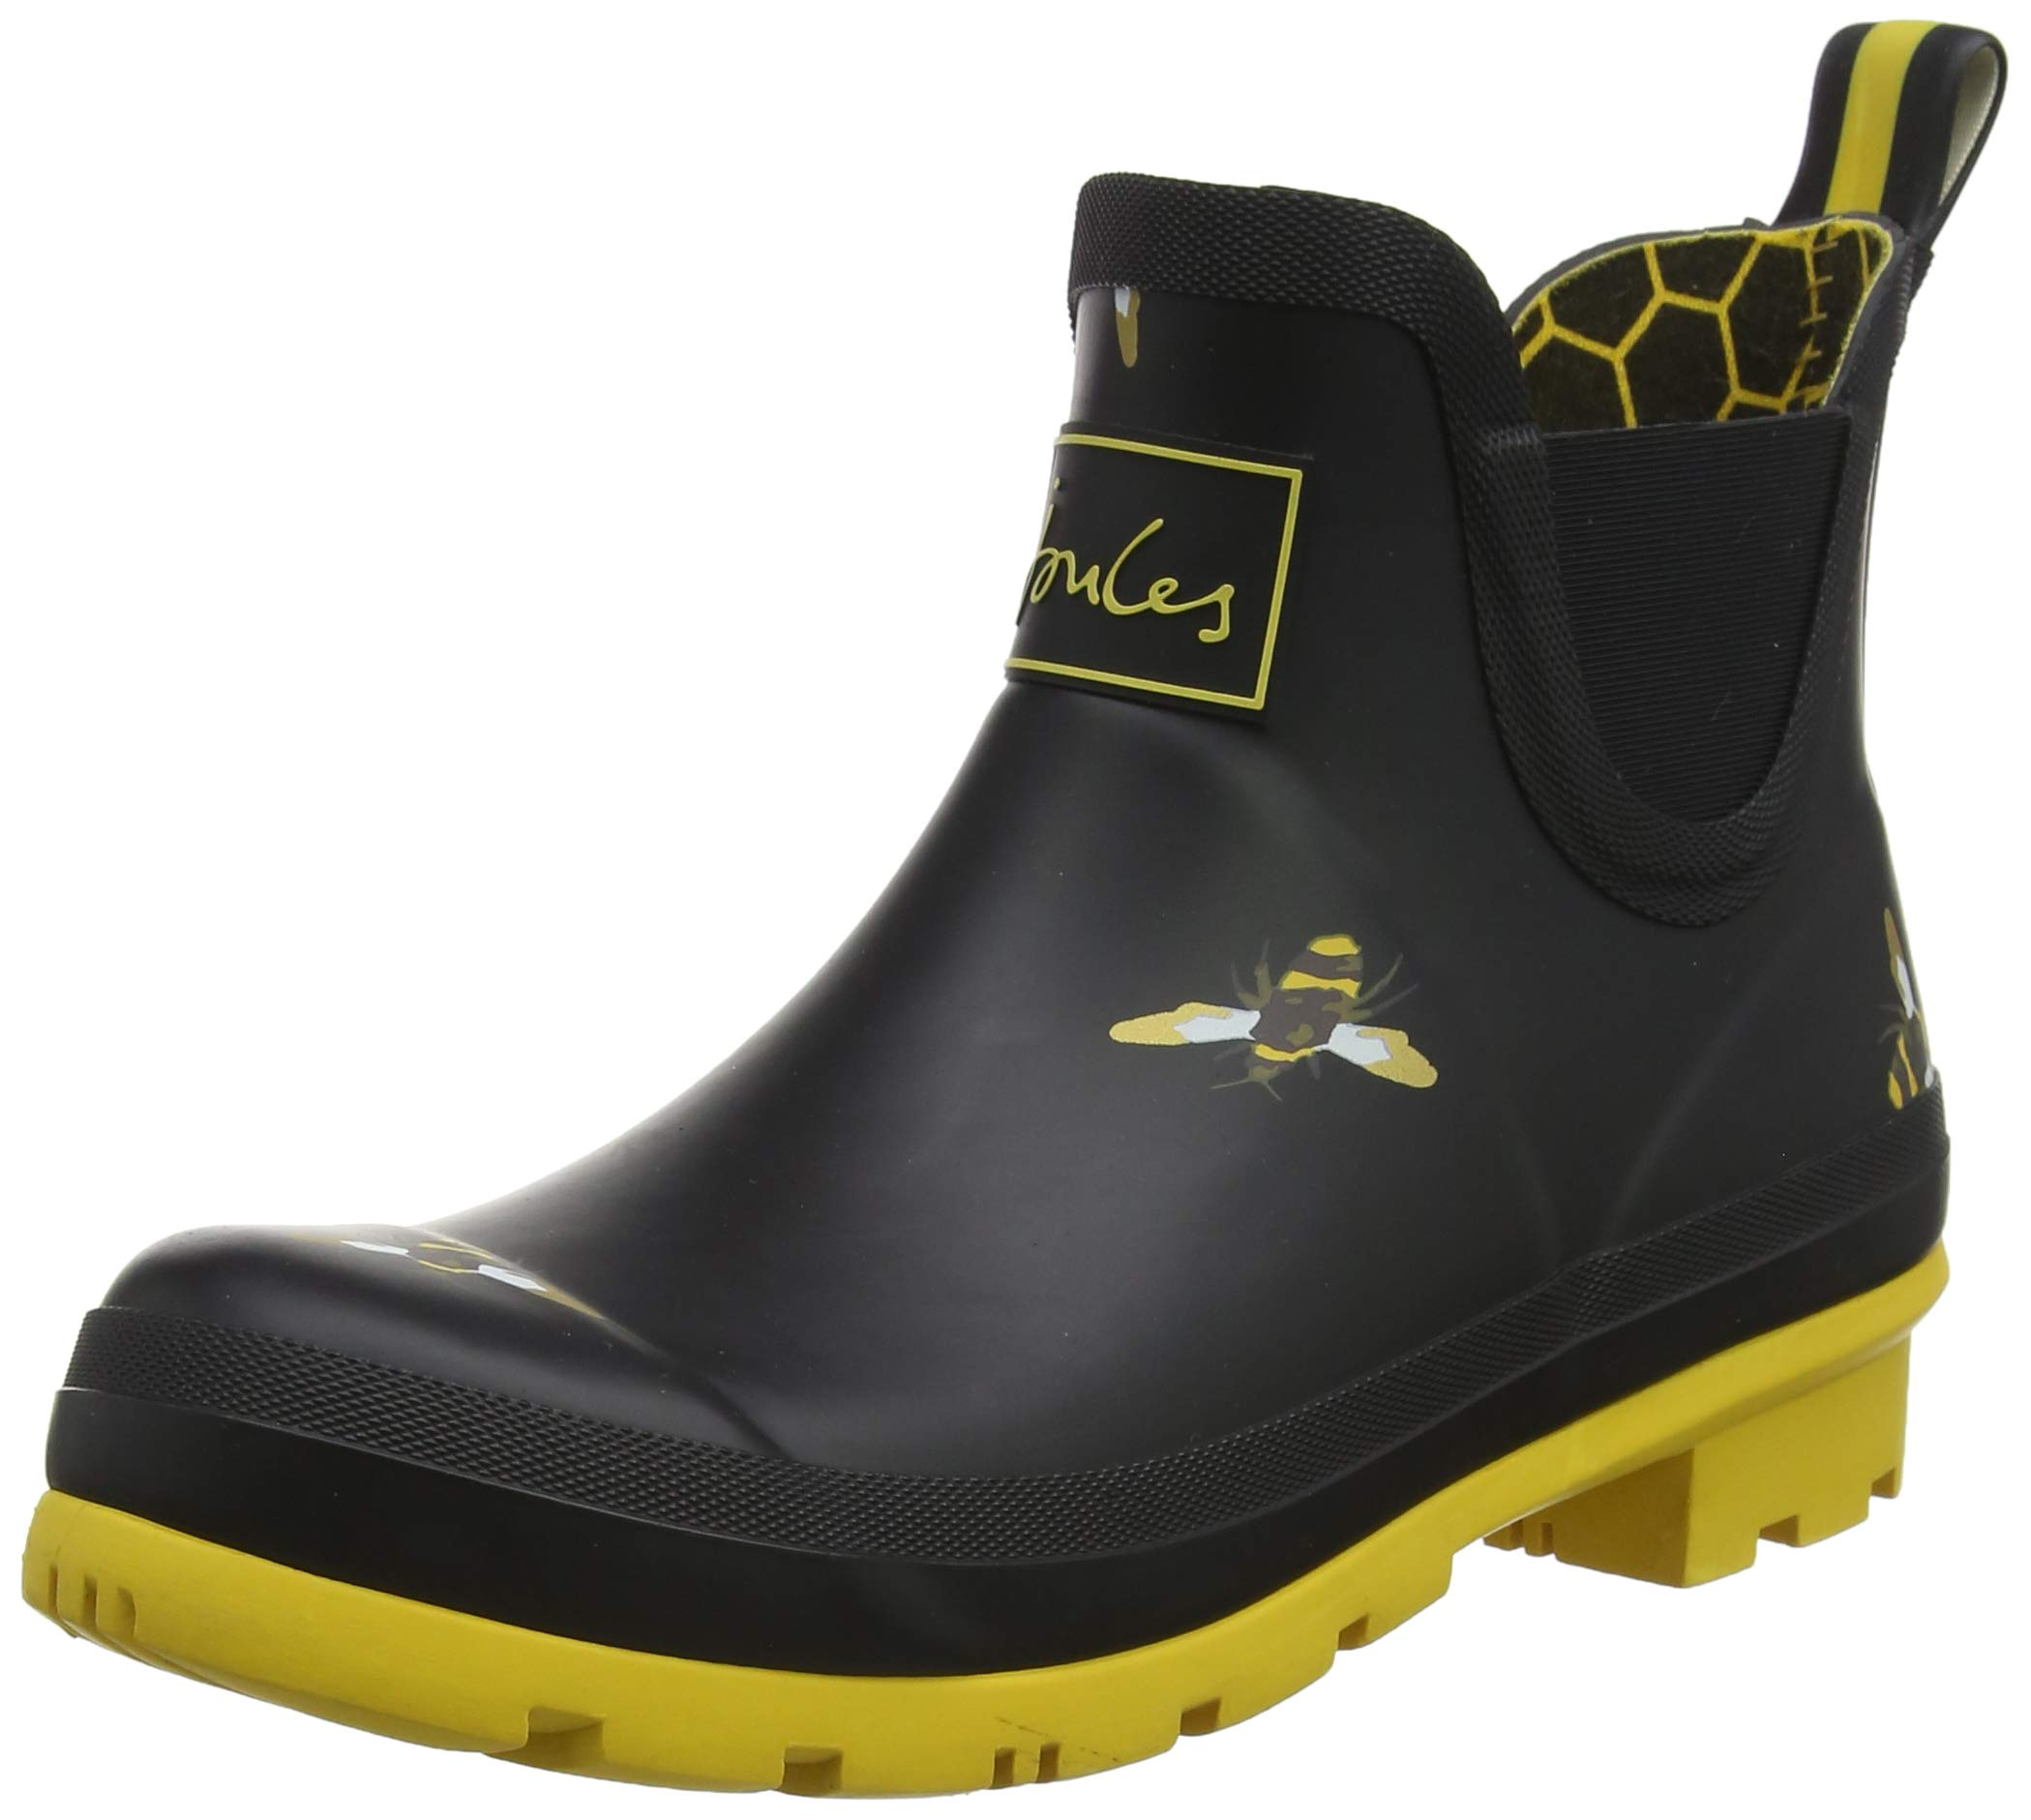 Joules Women's Wellibob Black Metallic Bees Ankle-High Rubber Rain Boot - 9M by Joules